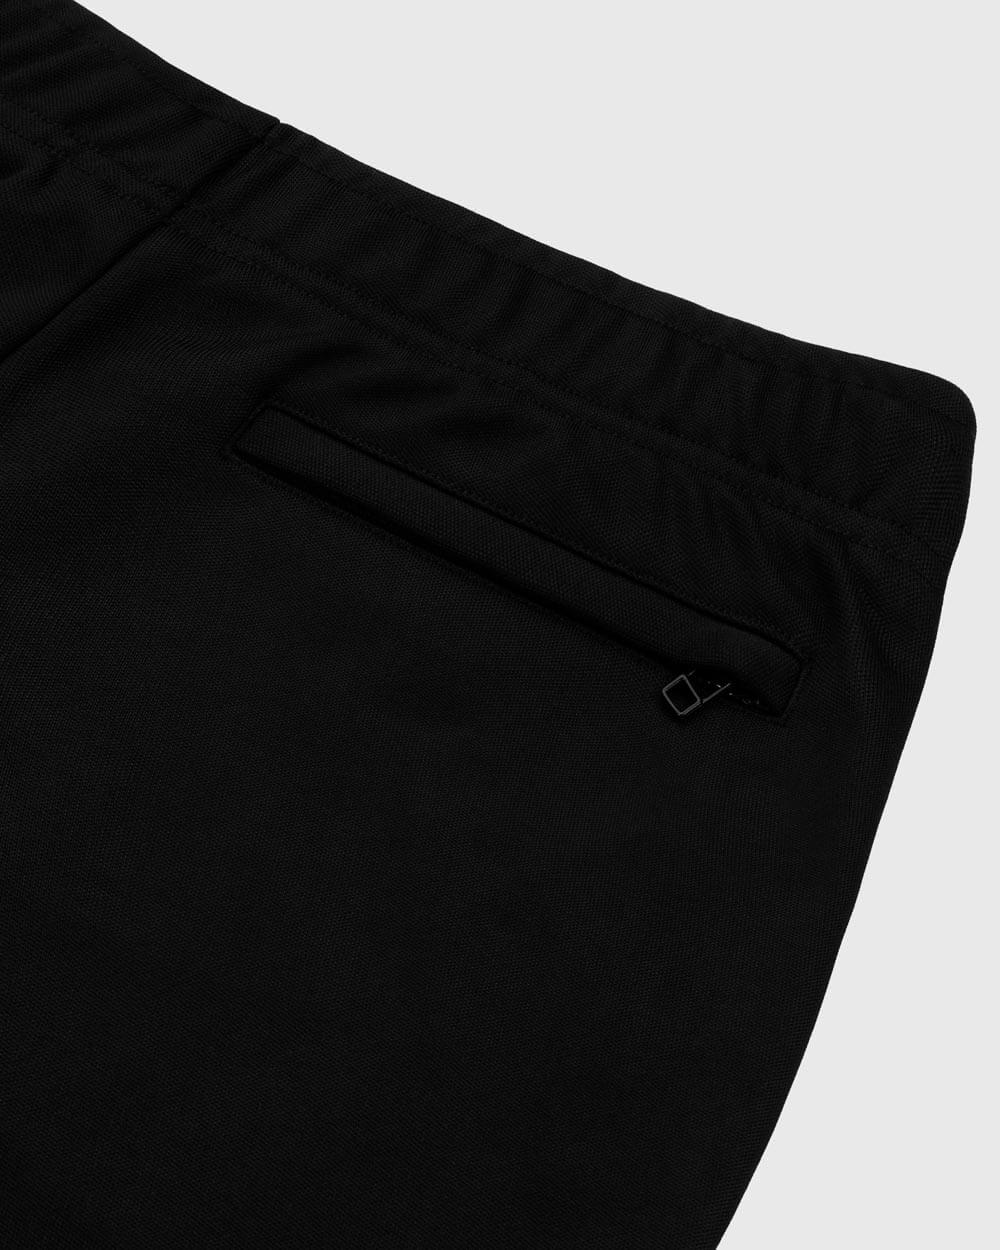 OVO ESSENTIALS PIQUE PANT - BLACK